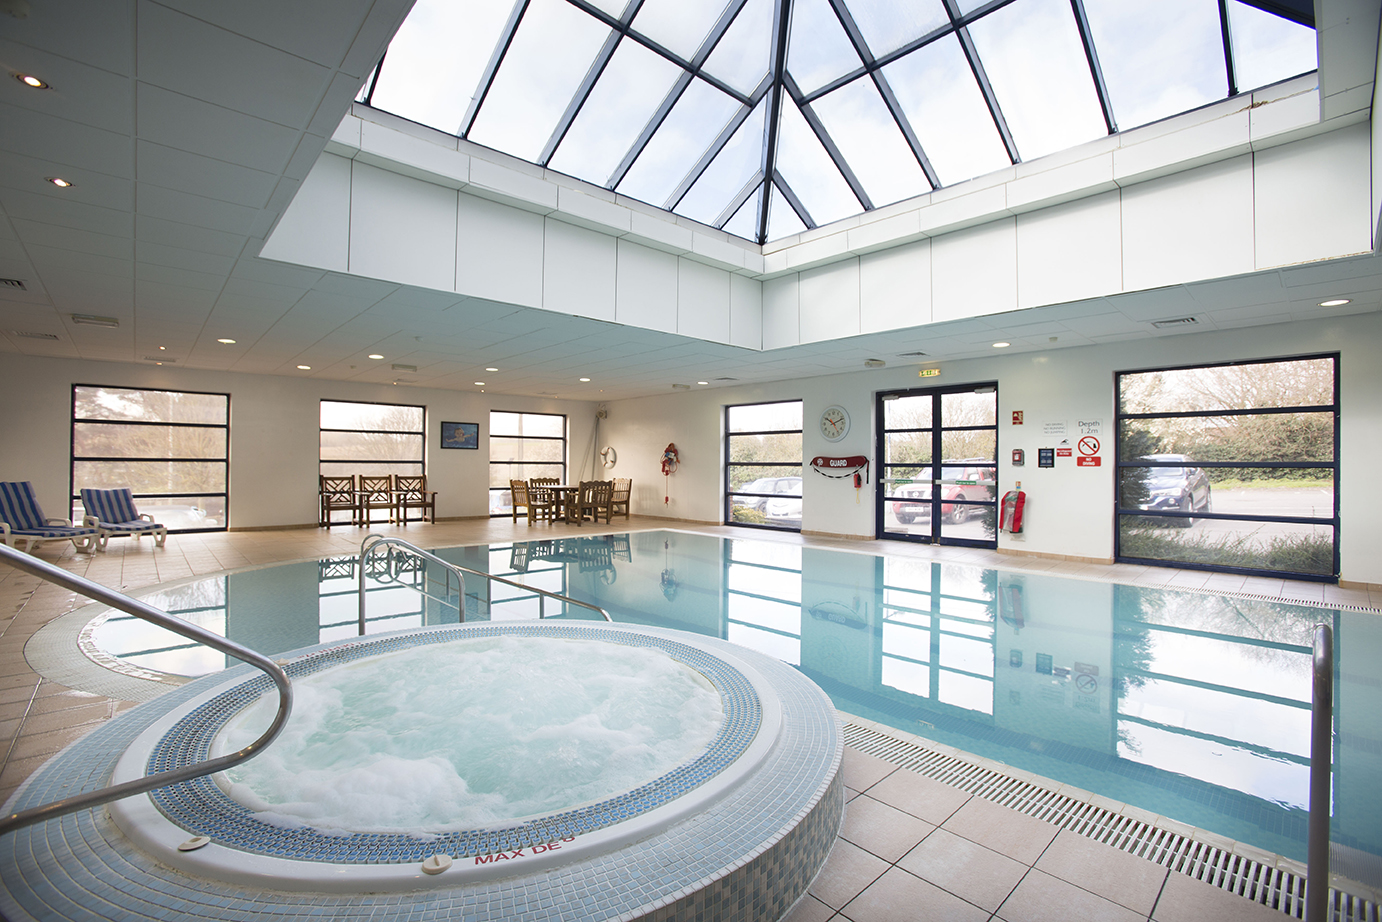 Luton Swimming Pool Affinity Health Clubs